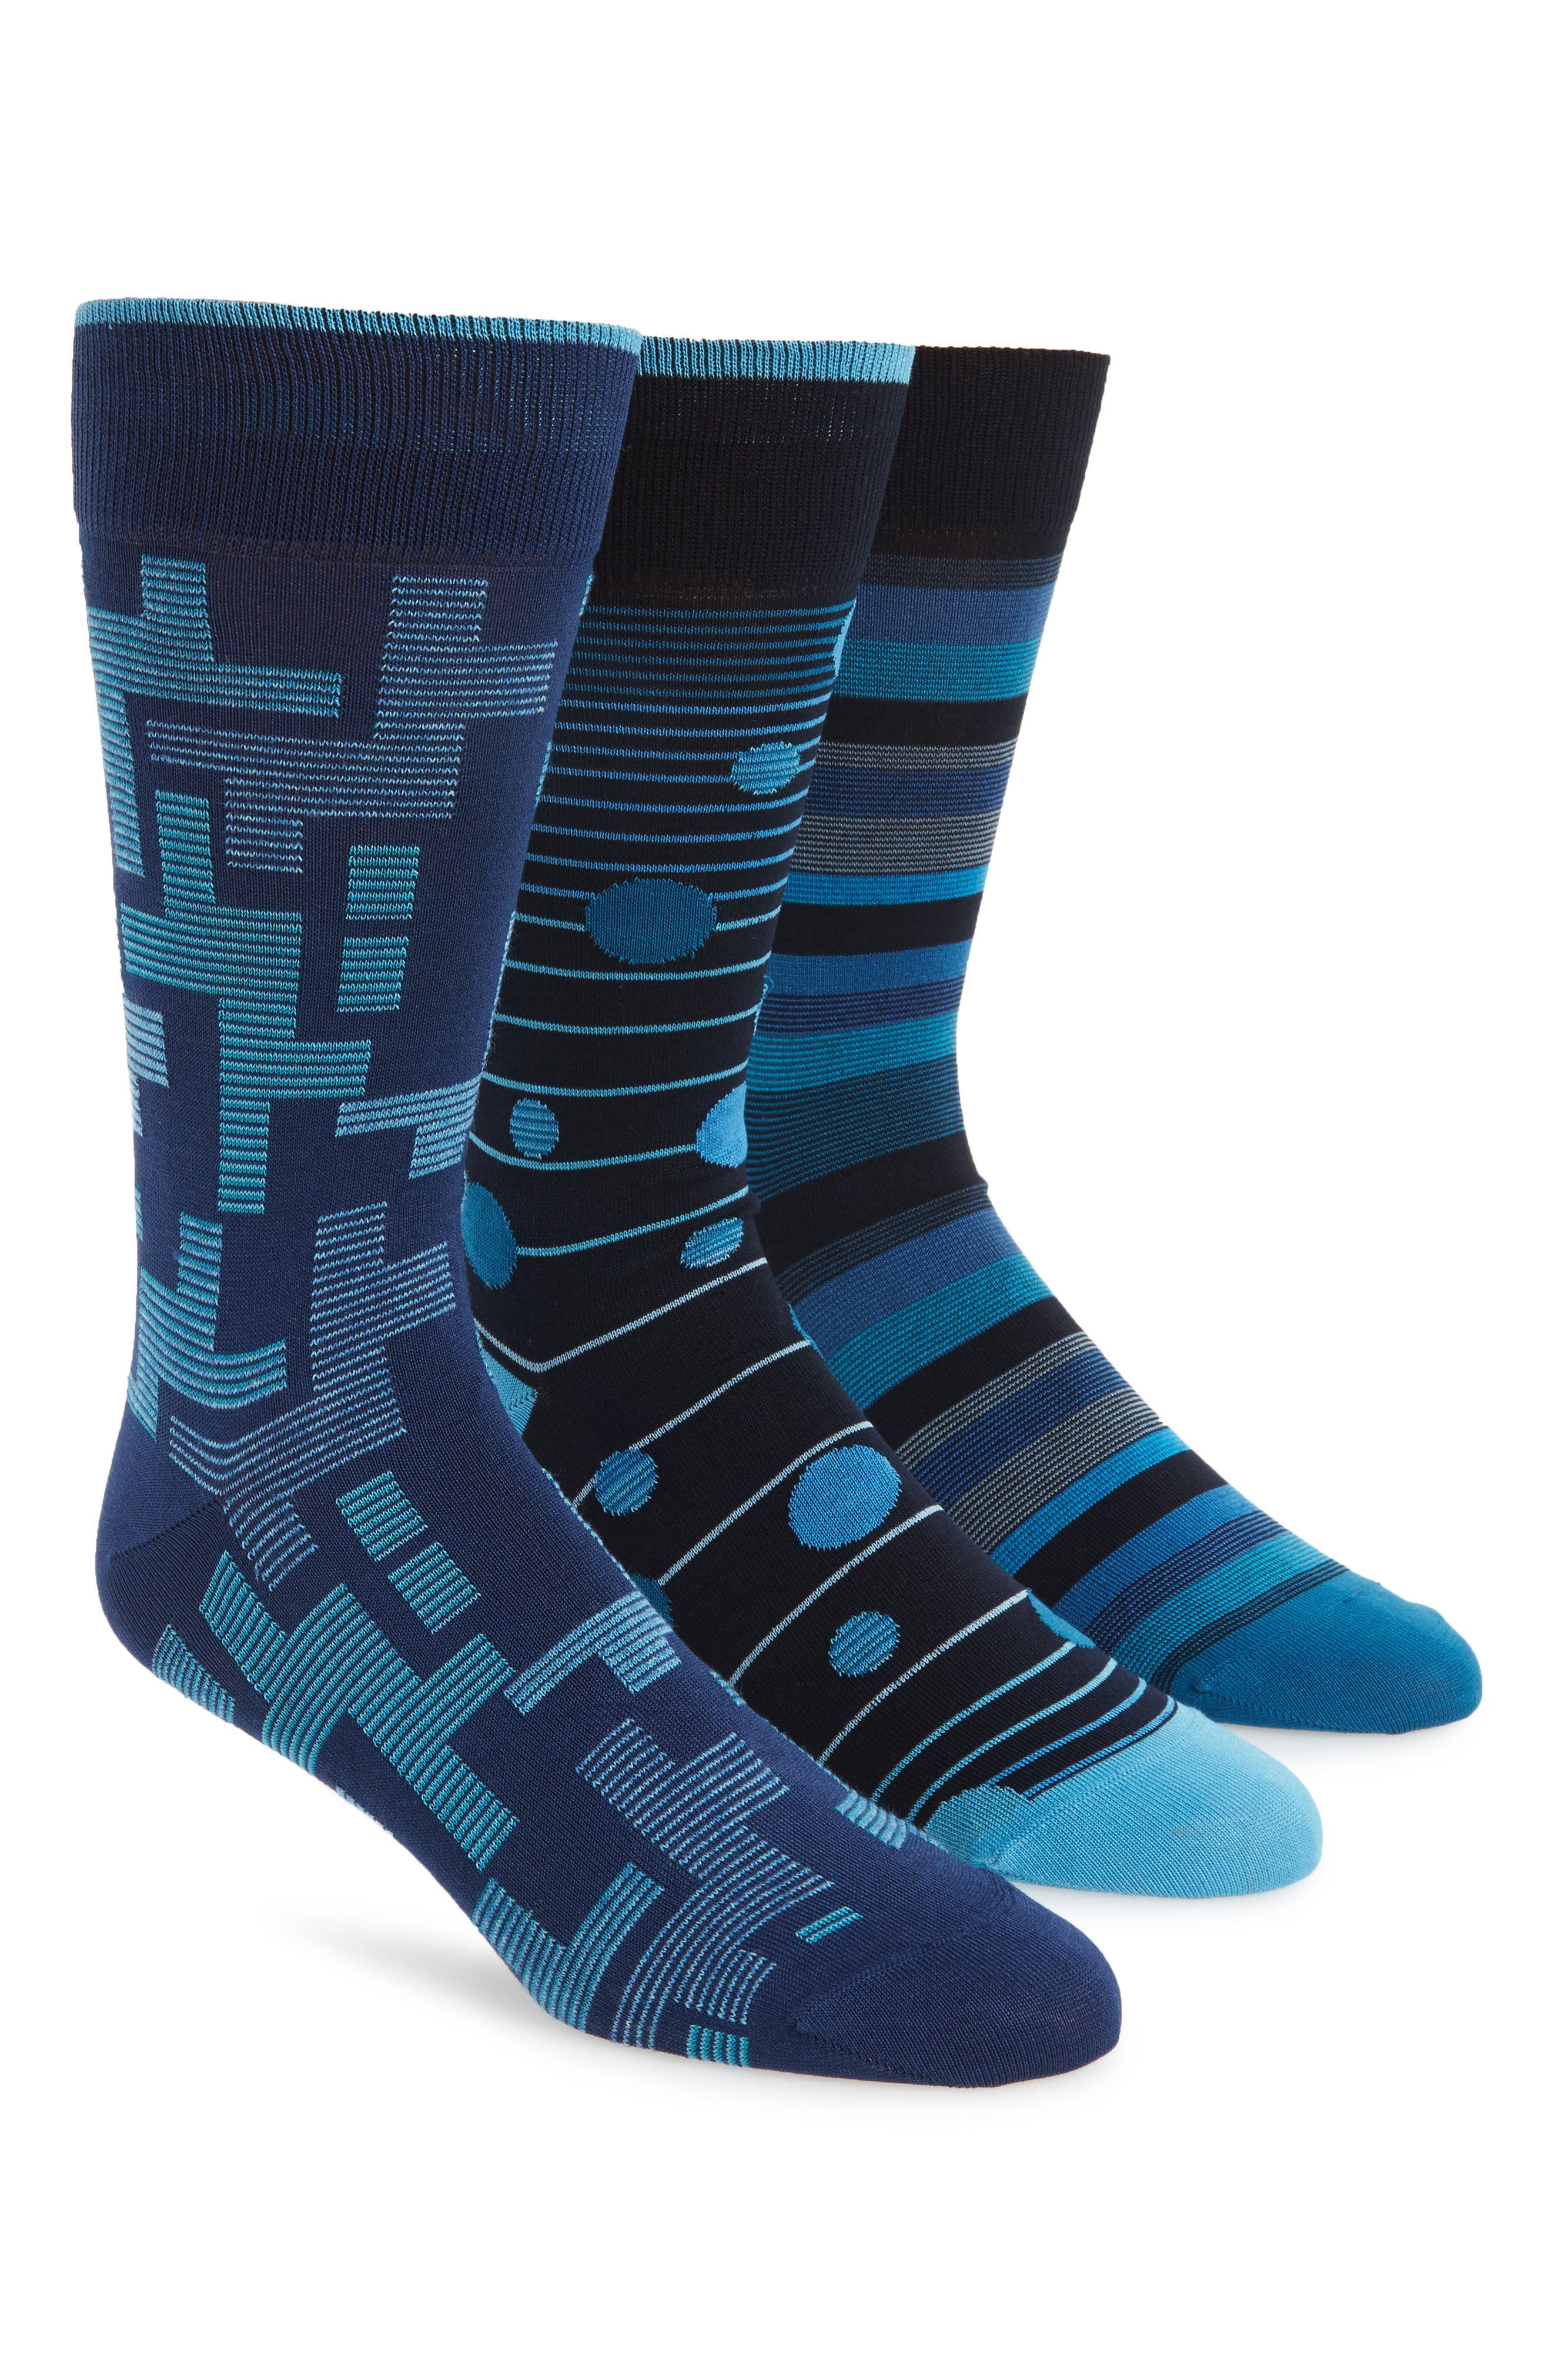 Alternate Image 1 Selected - Bugatchi 3-Pack Mixed Pattern Socks ($59.85 Value)